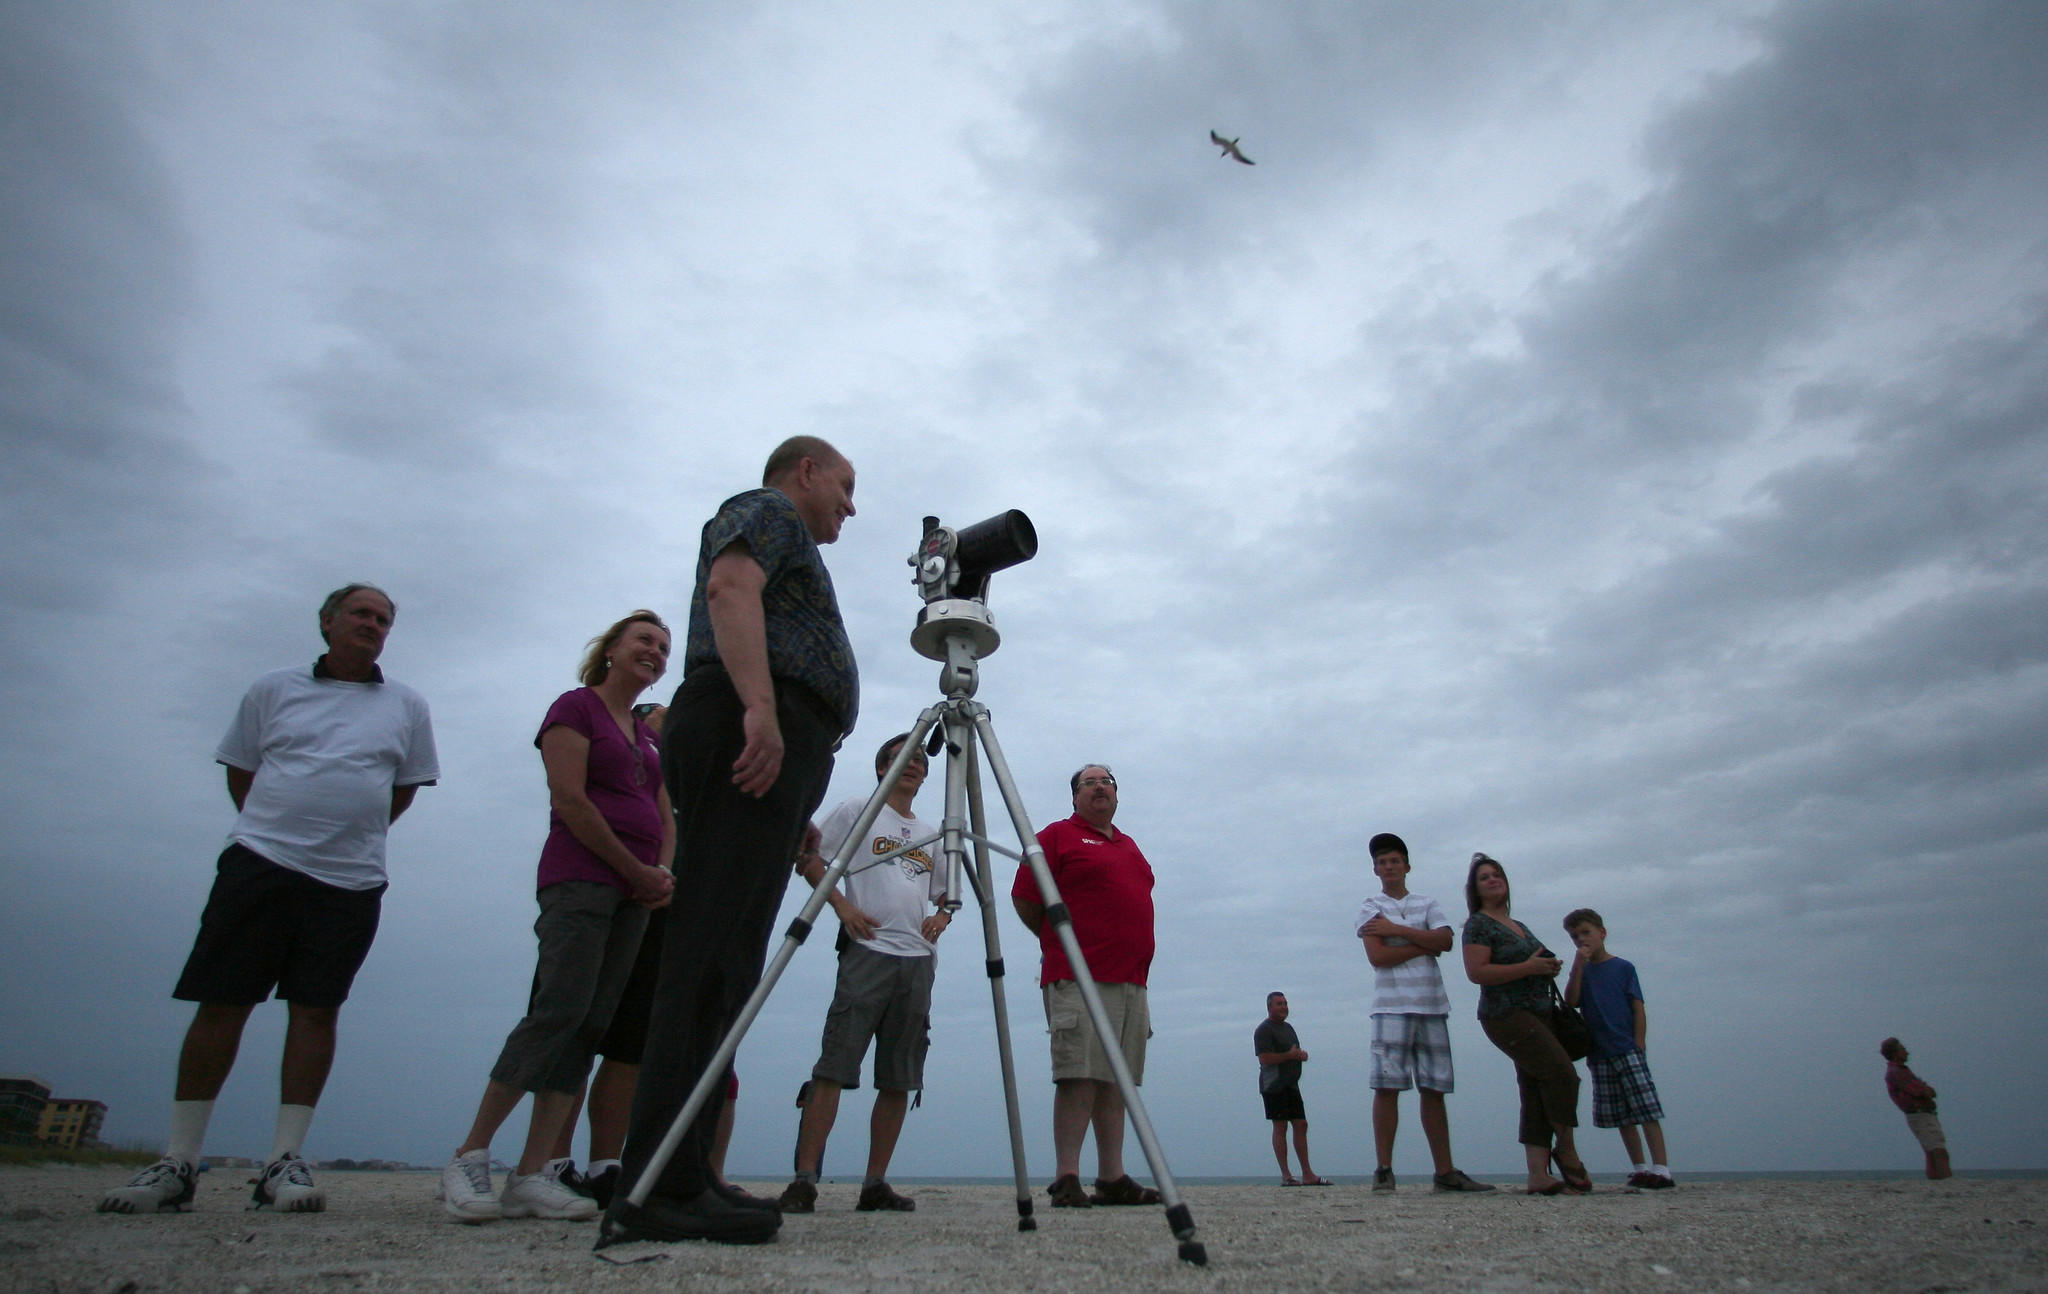 Members of the St. Petersburg Astronomy Club along with several other attendees gather along the beach to watch the Venus Transit at The Old Snack Shack in Madeira Beach in St. Petersburg, Fla Tuesday, June 5, 2012.